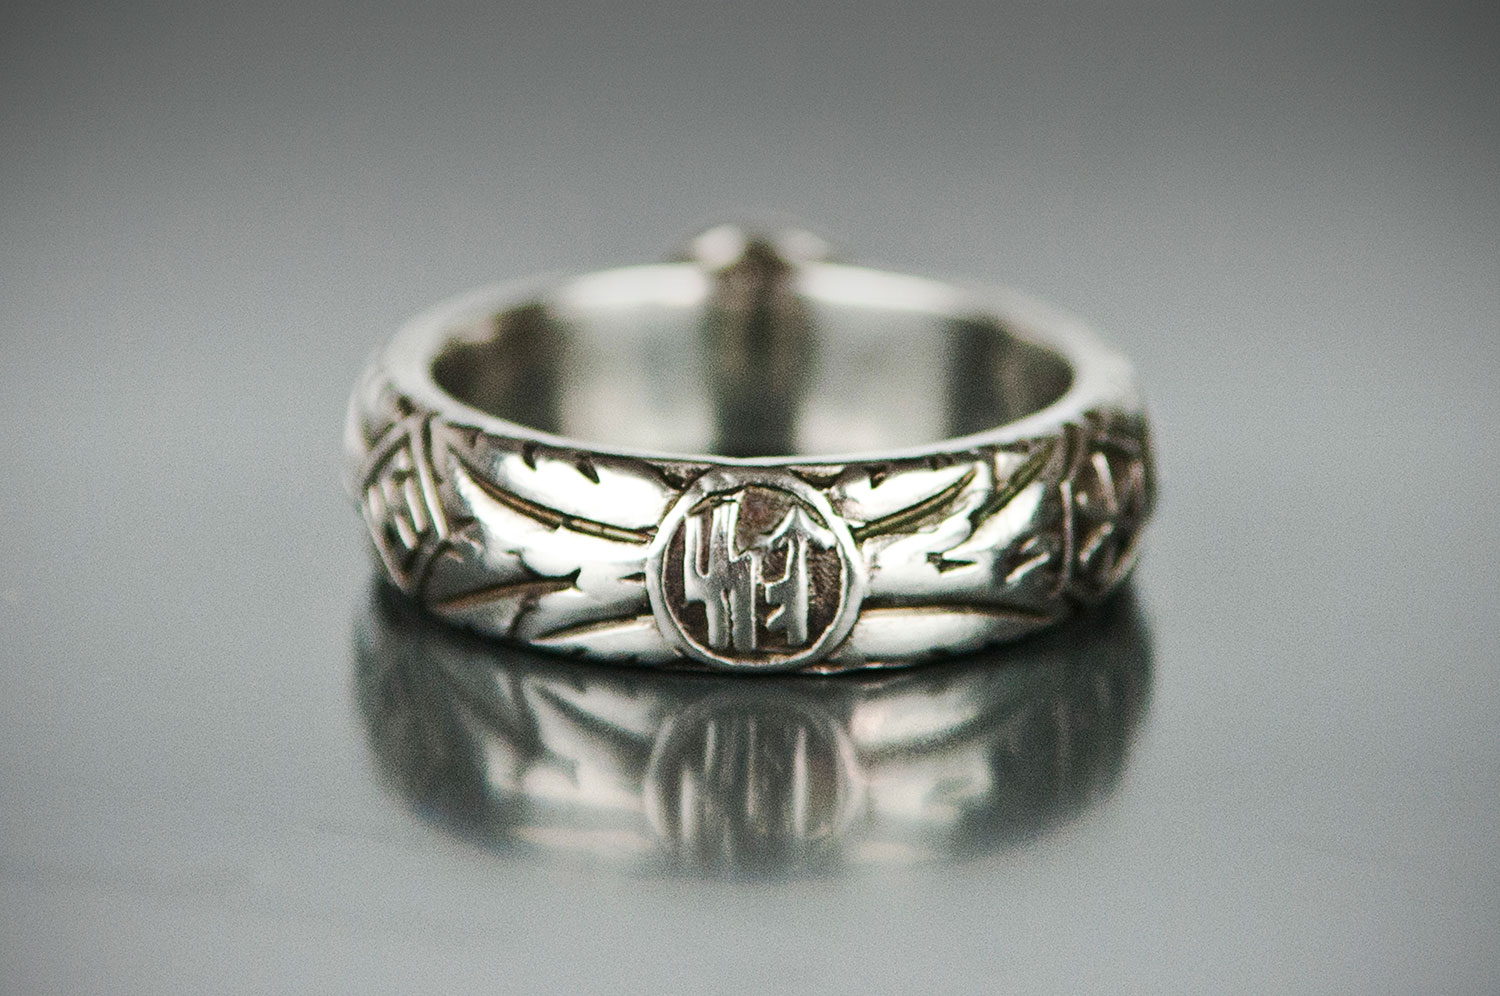 Panzer Meyer SS Honor Ring